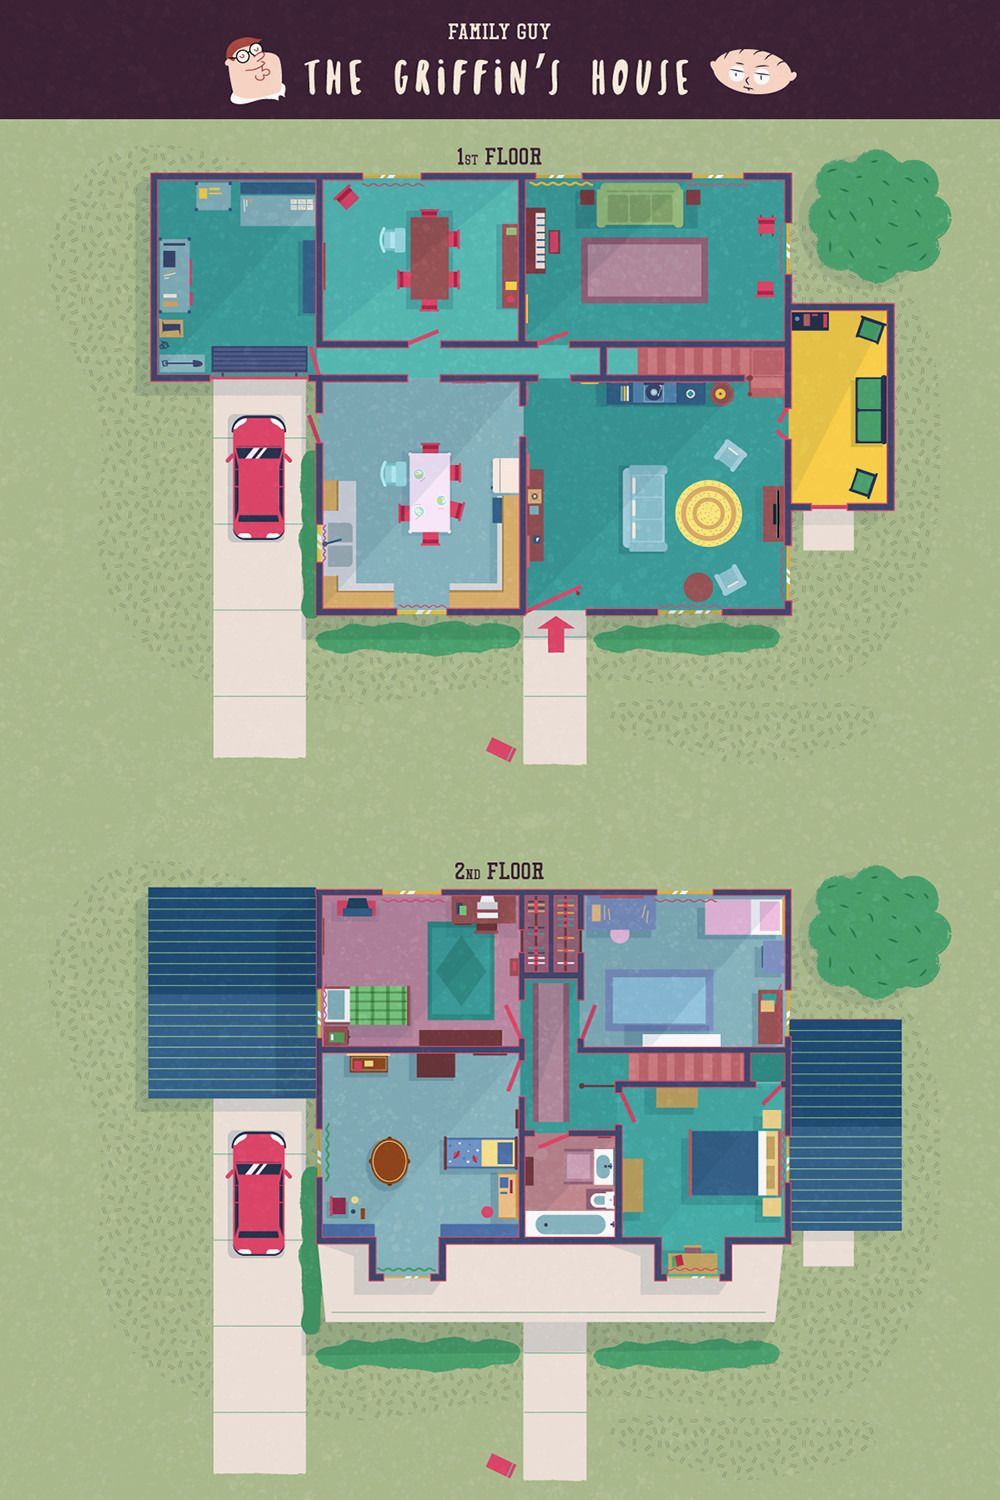 House Plan Software For Mac 2021 In 2020 House Floor Plans Sims 4 House Plans Floor Plans